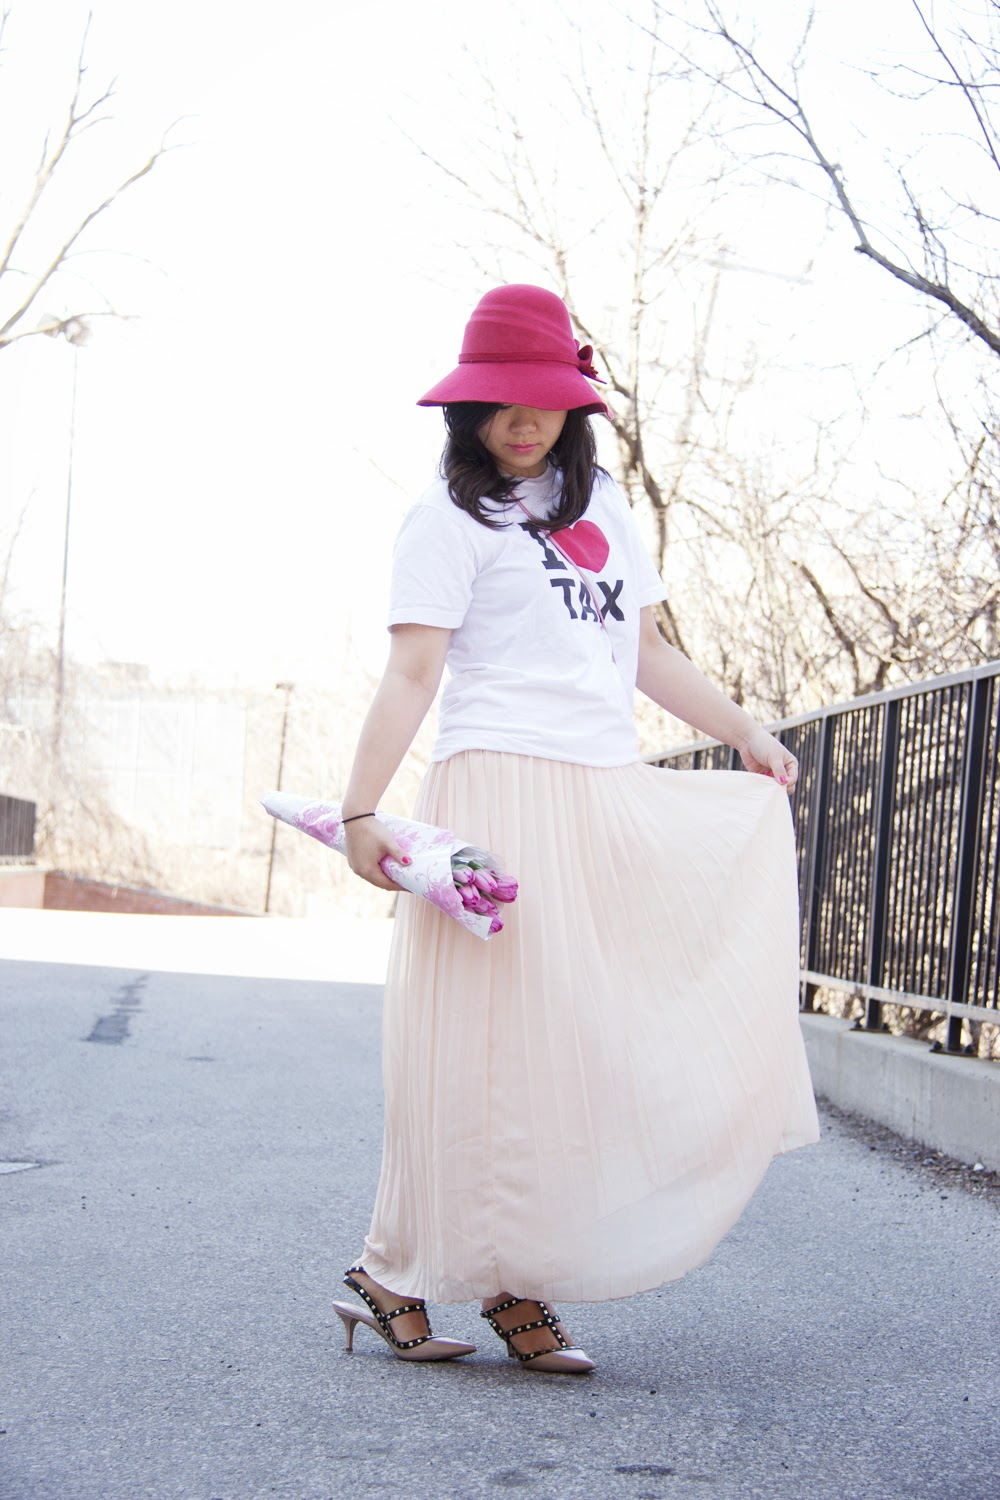 Anthropologie-vintage-hat, Graphic-Tee, Maxi-Skirt, Tulip-Flowers, fashion-blogger